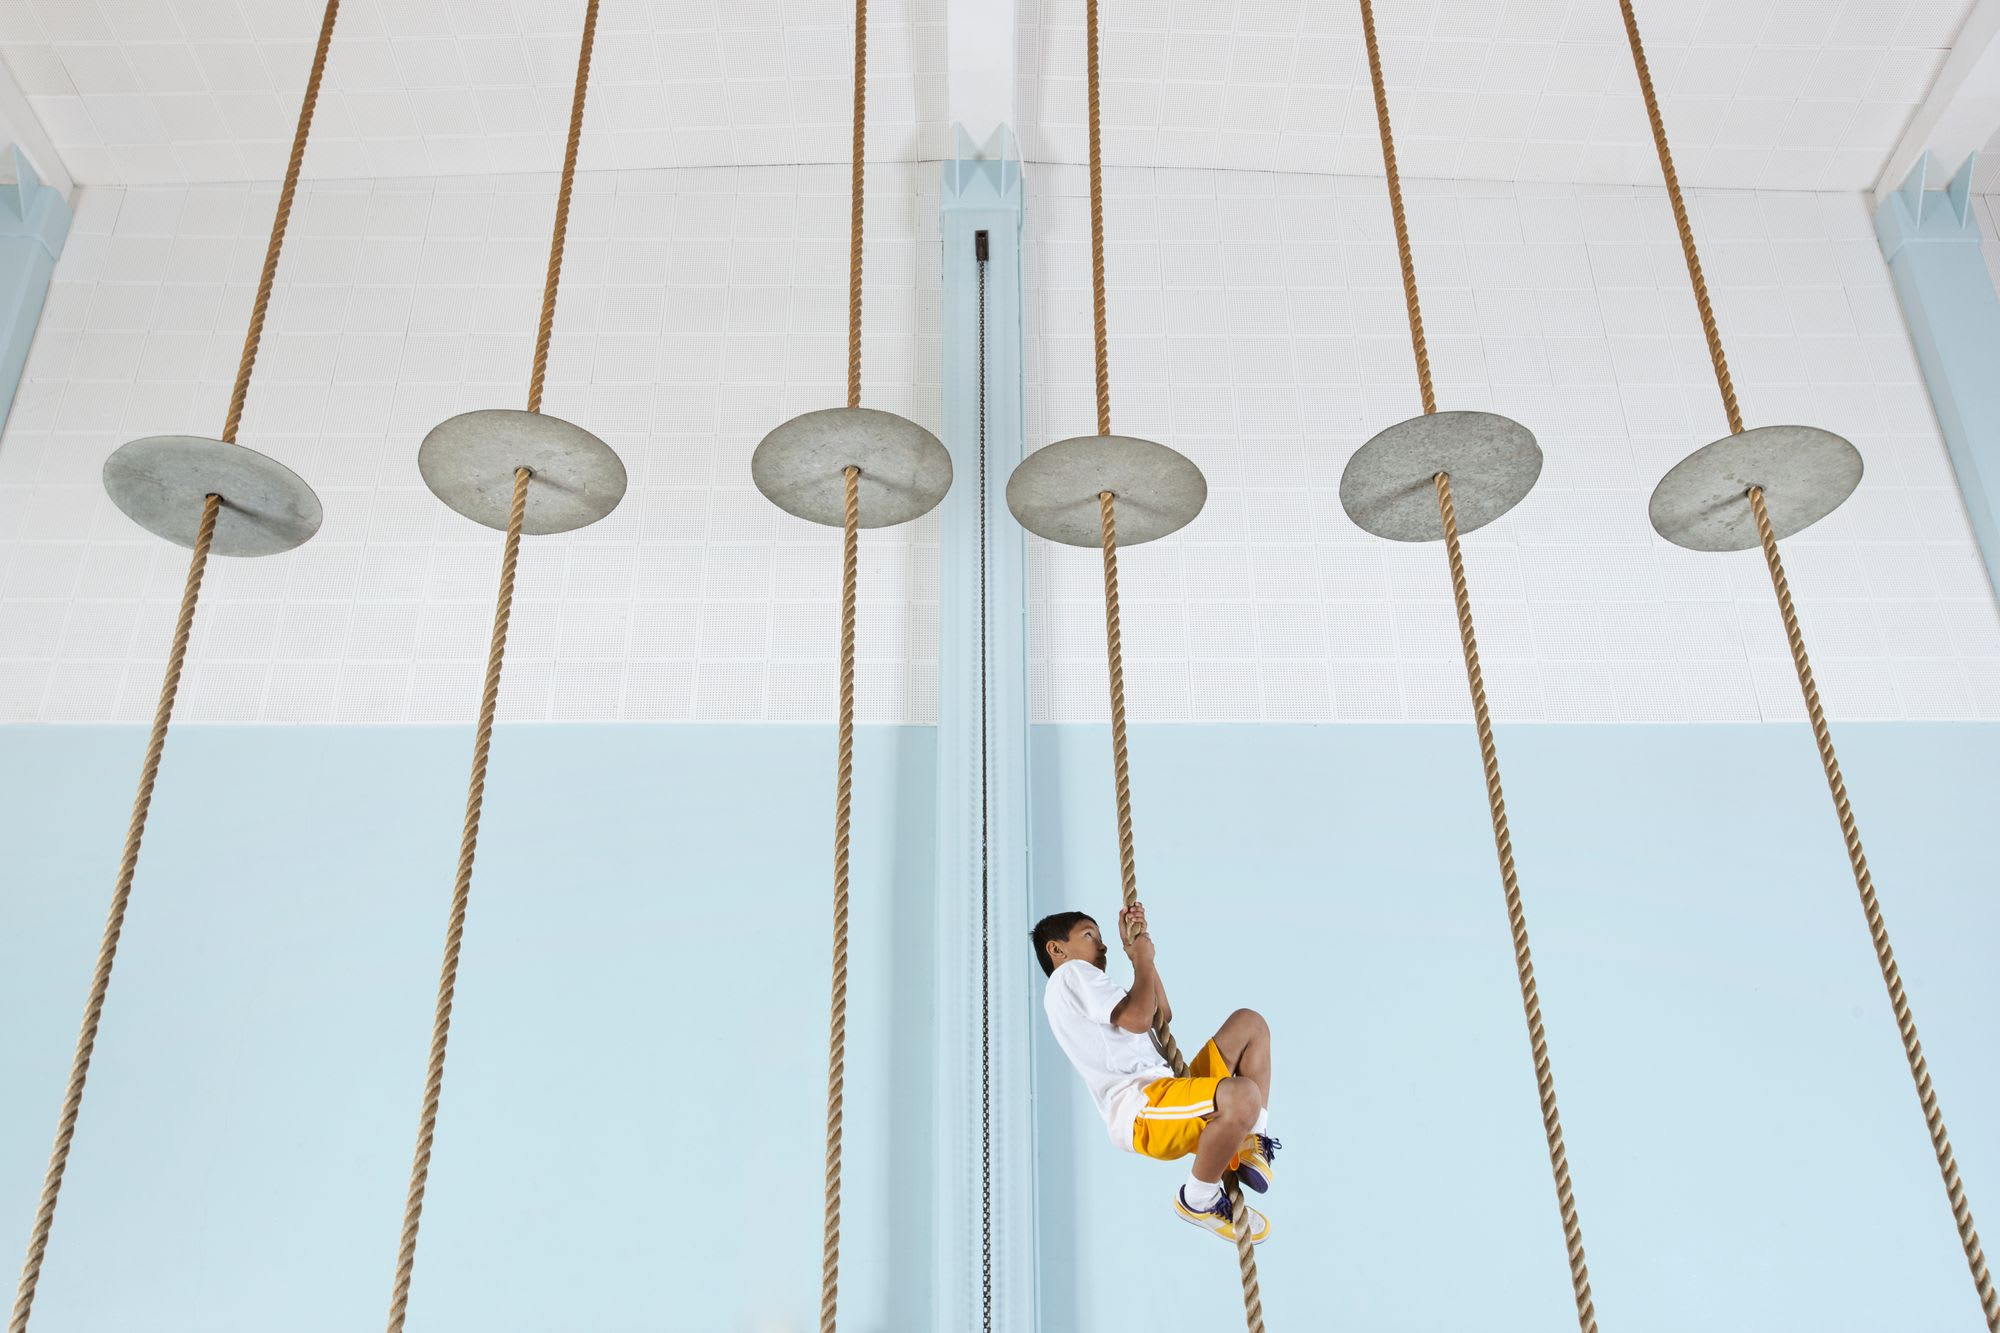 A boy climbing up a rope at the gym.